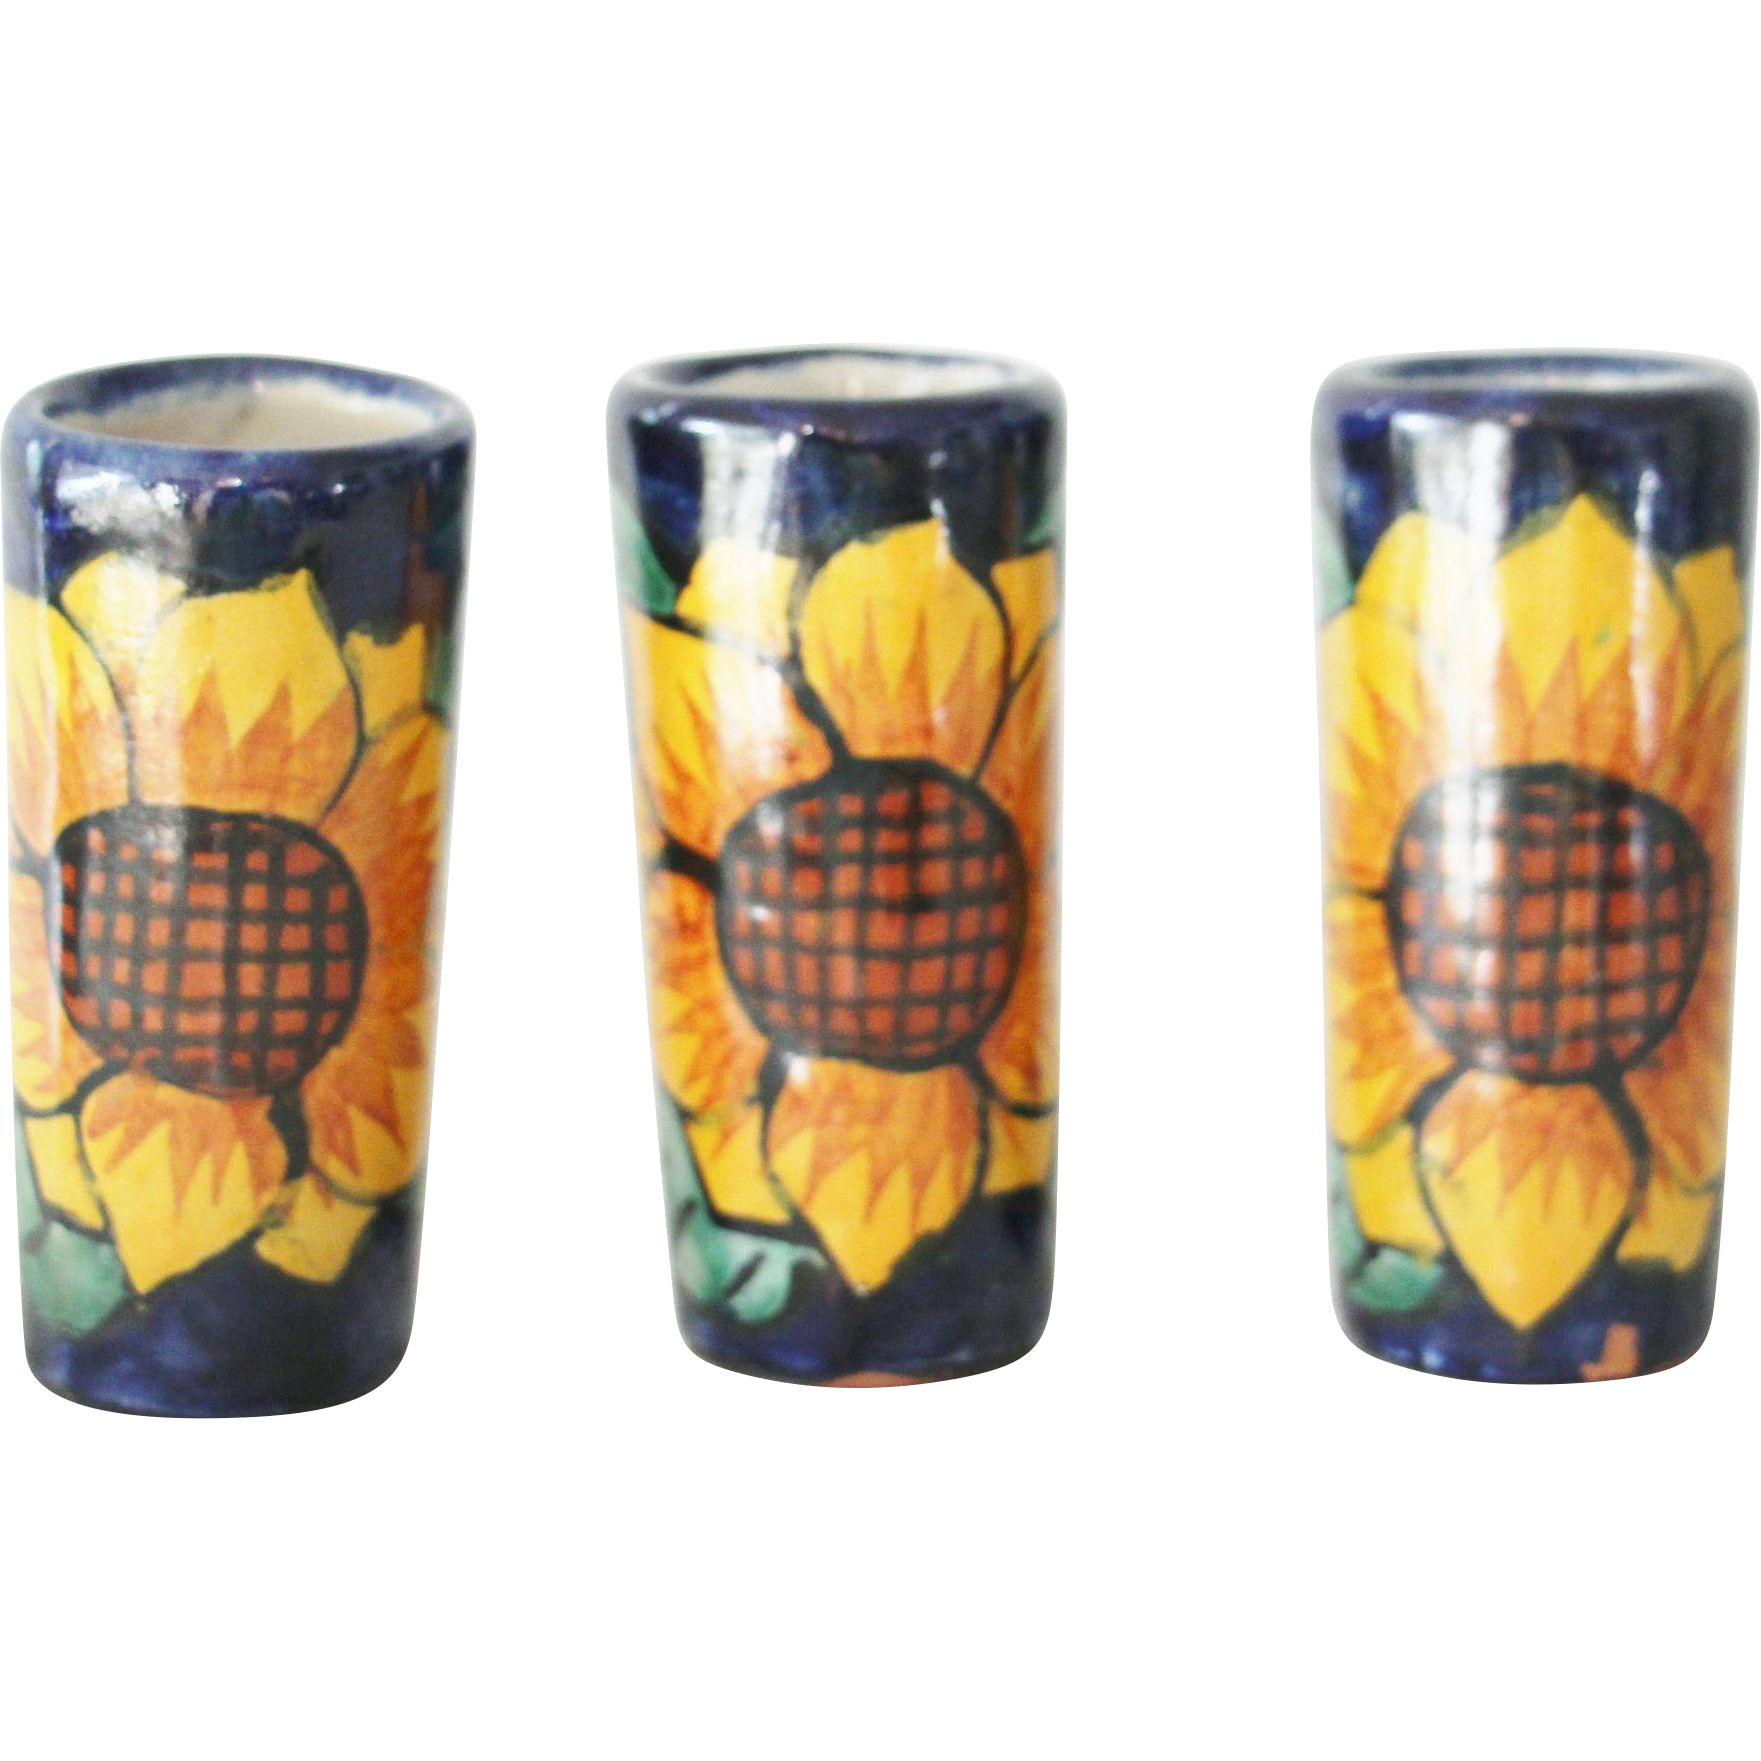 3 Sunflower Mini Vases Tumblers Tequila Shot Glasses Cordial Cups